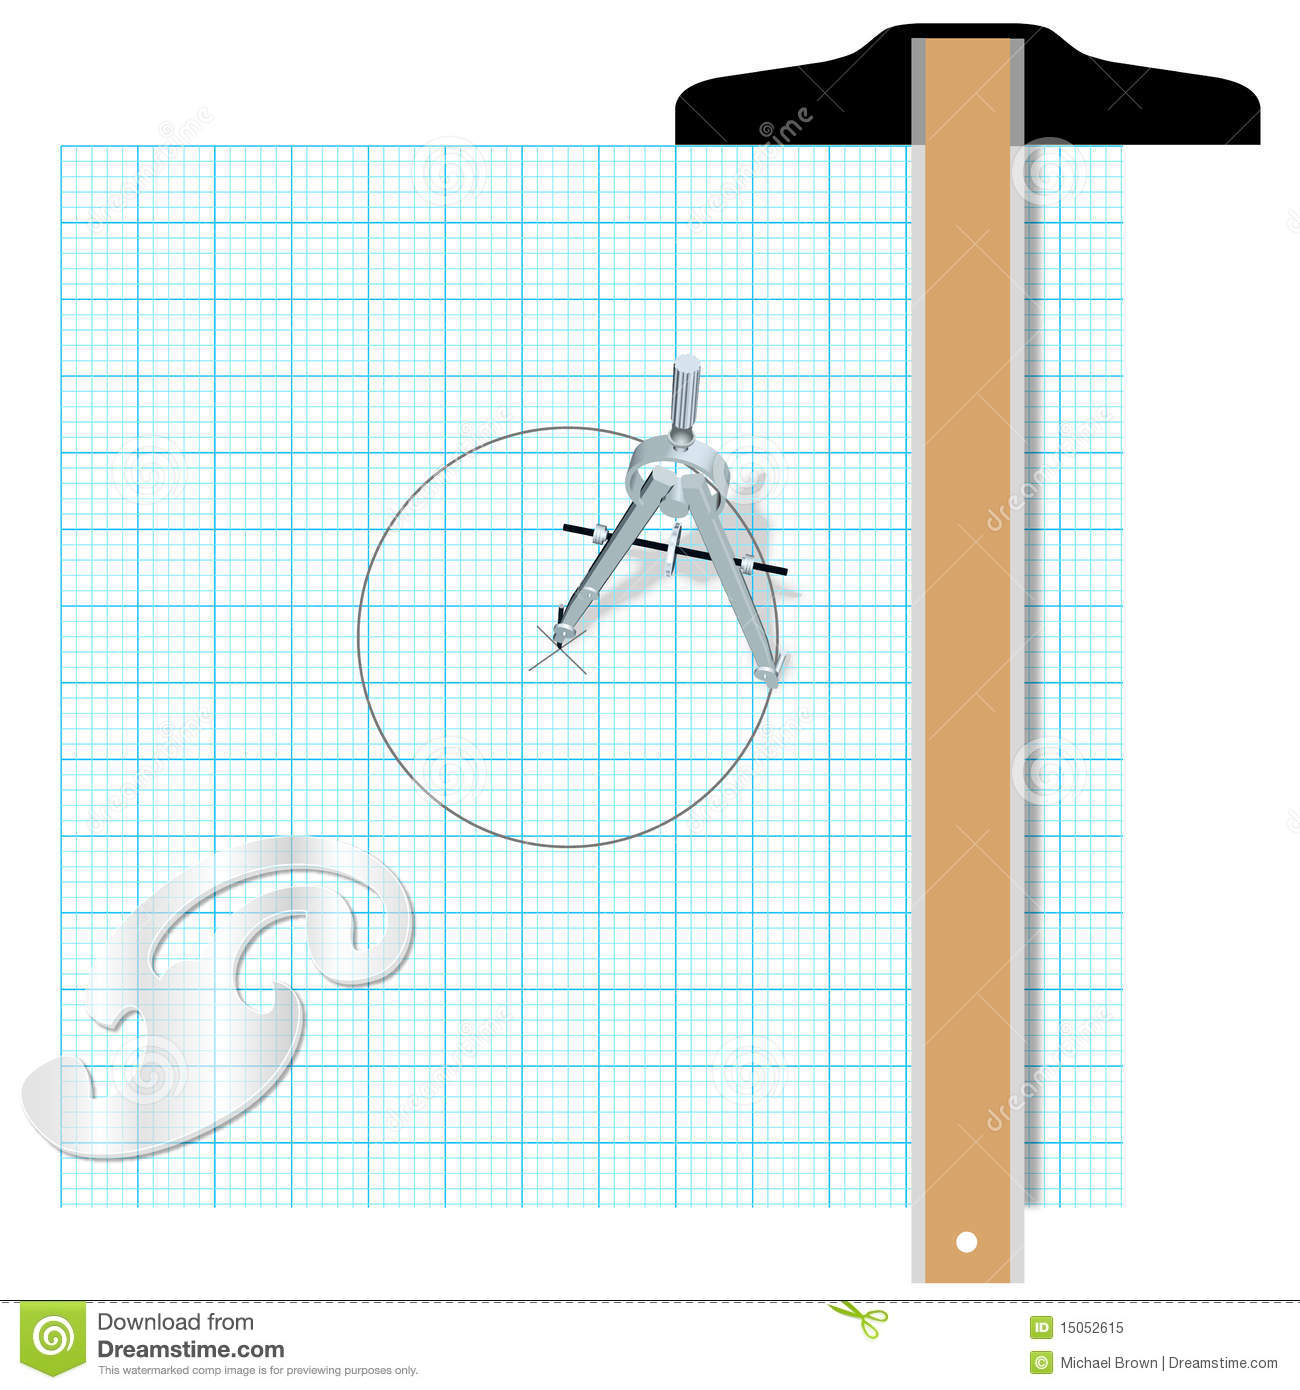 Drafting tools square compass engineering royalty free for Architecture t square